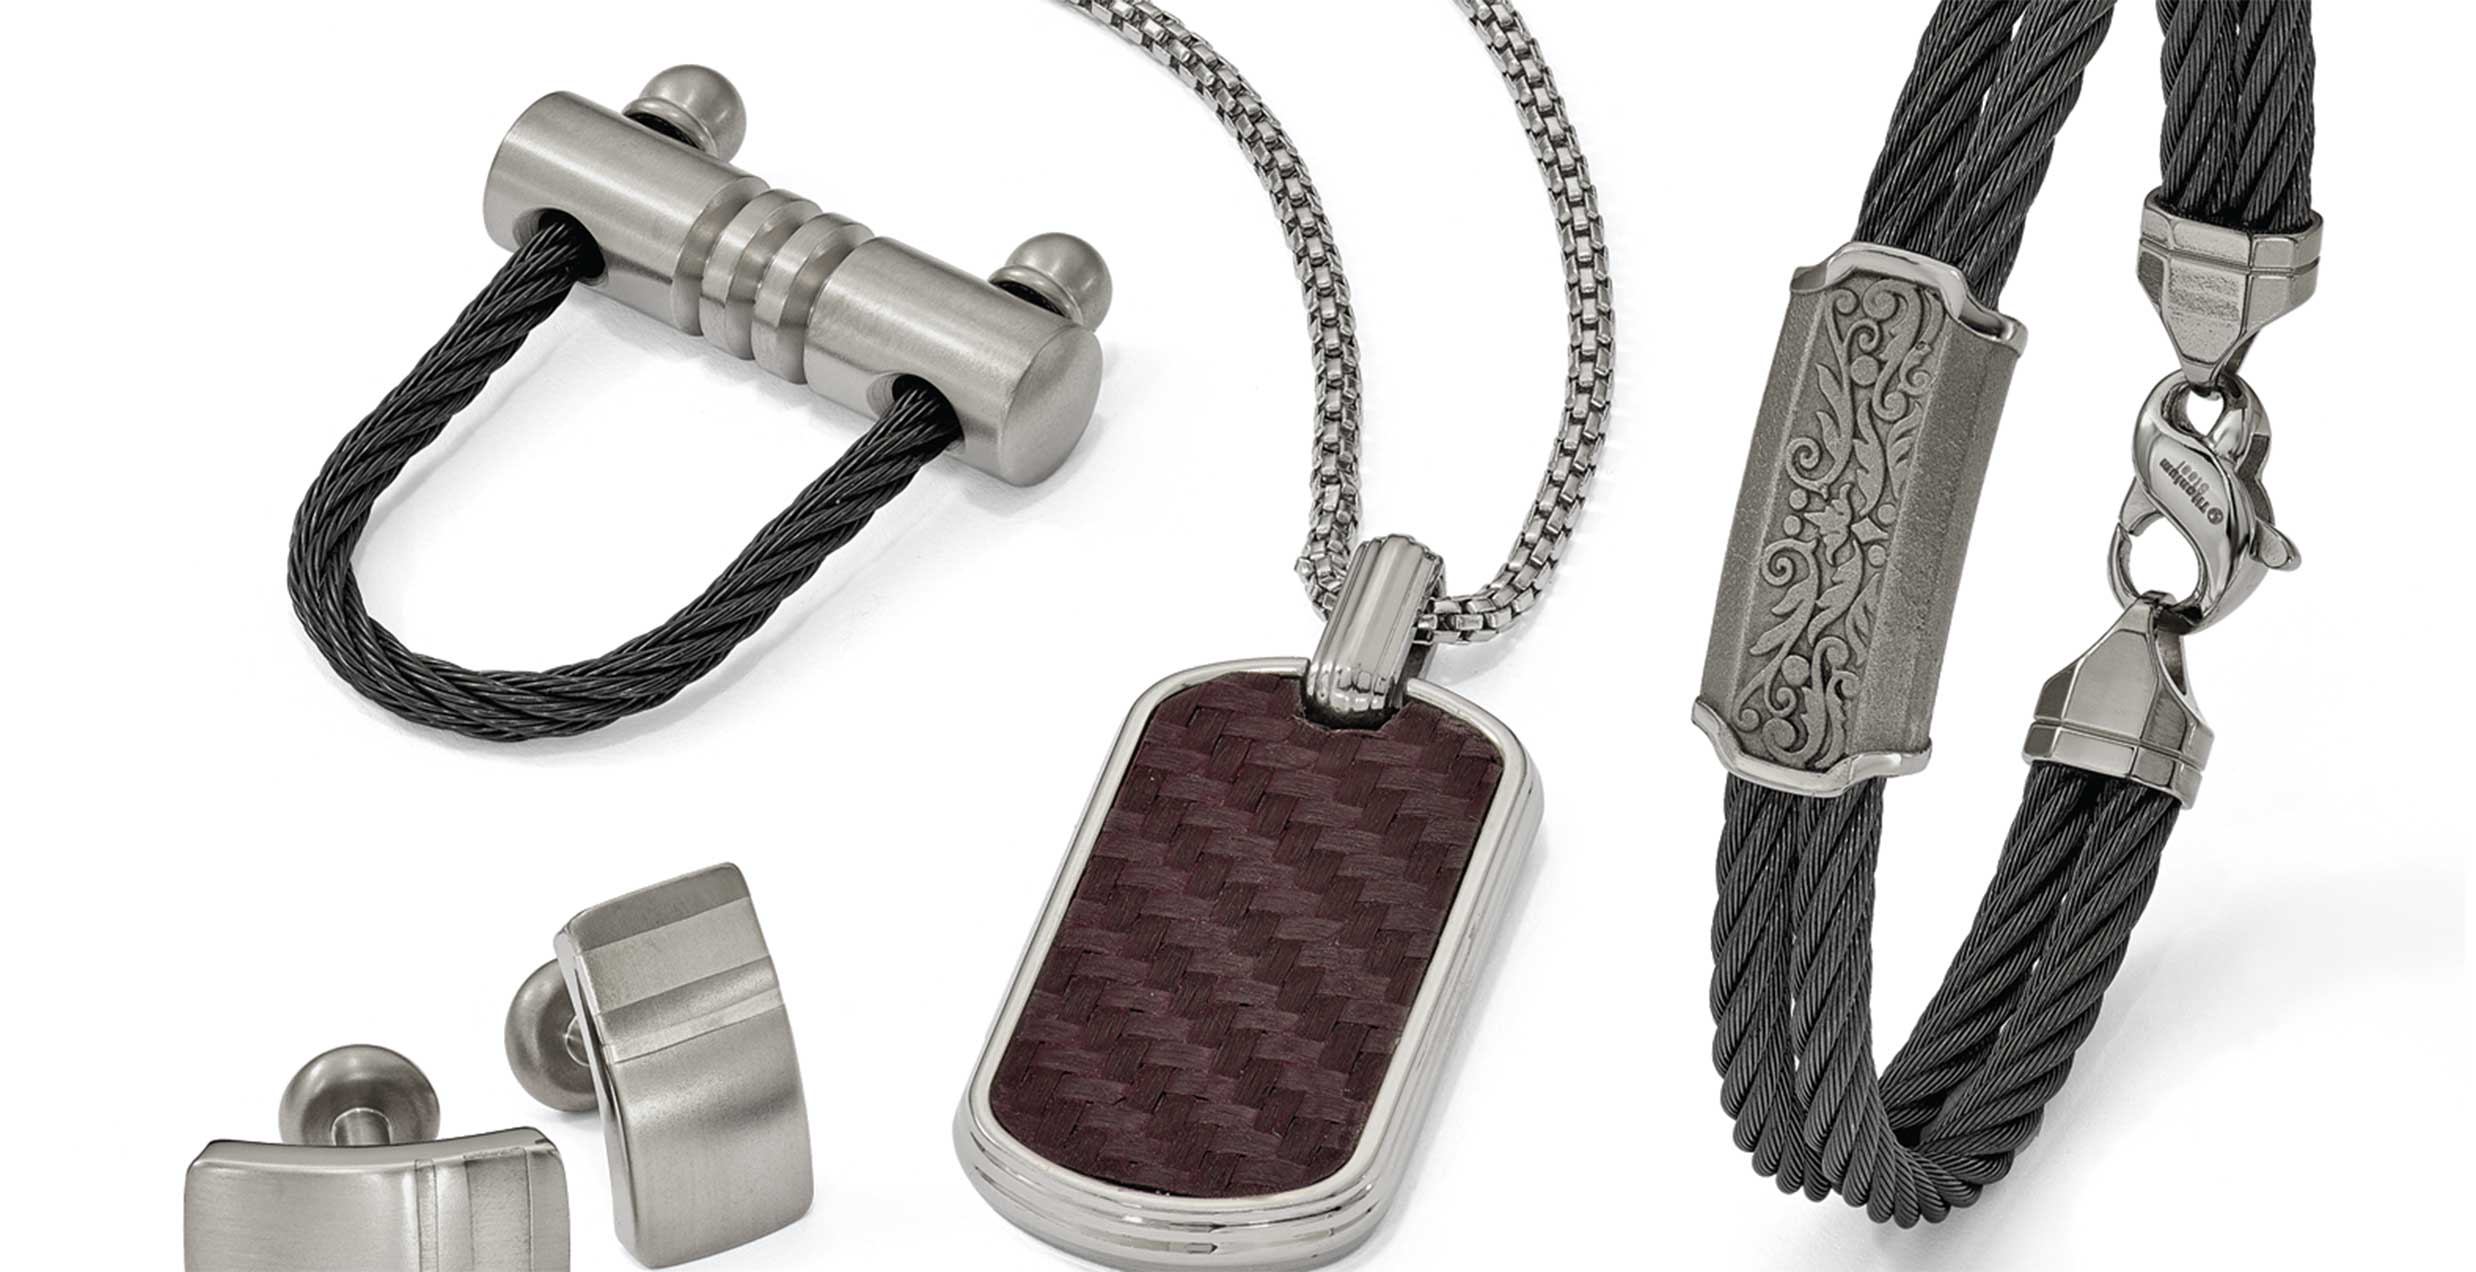 Shop for Edward Mirell Modern Men's Jewelry